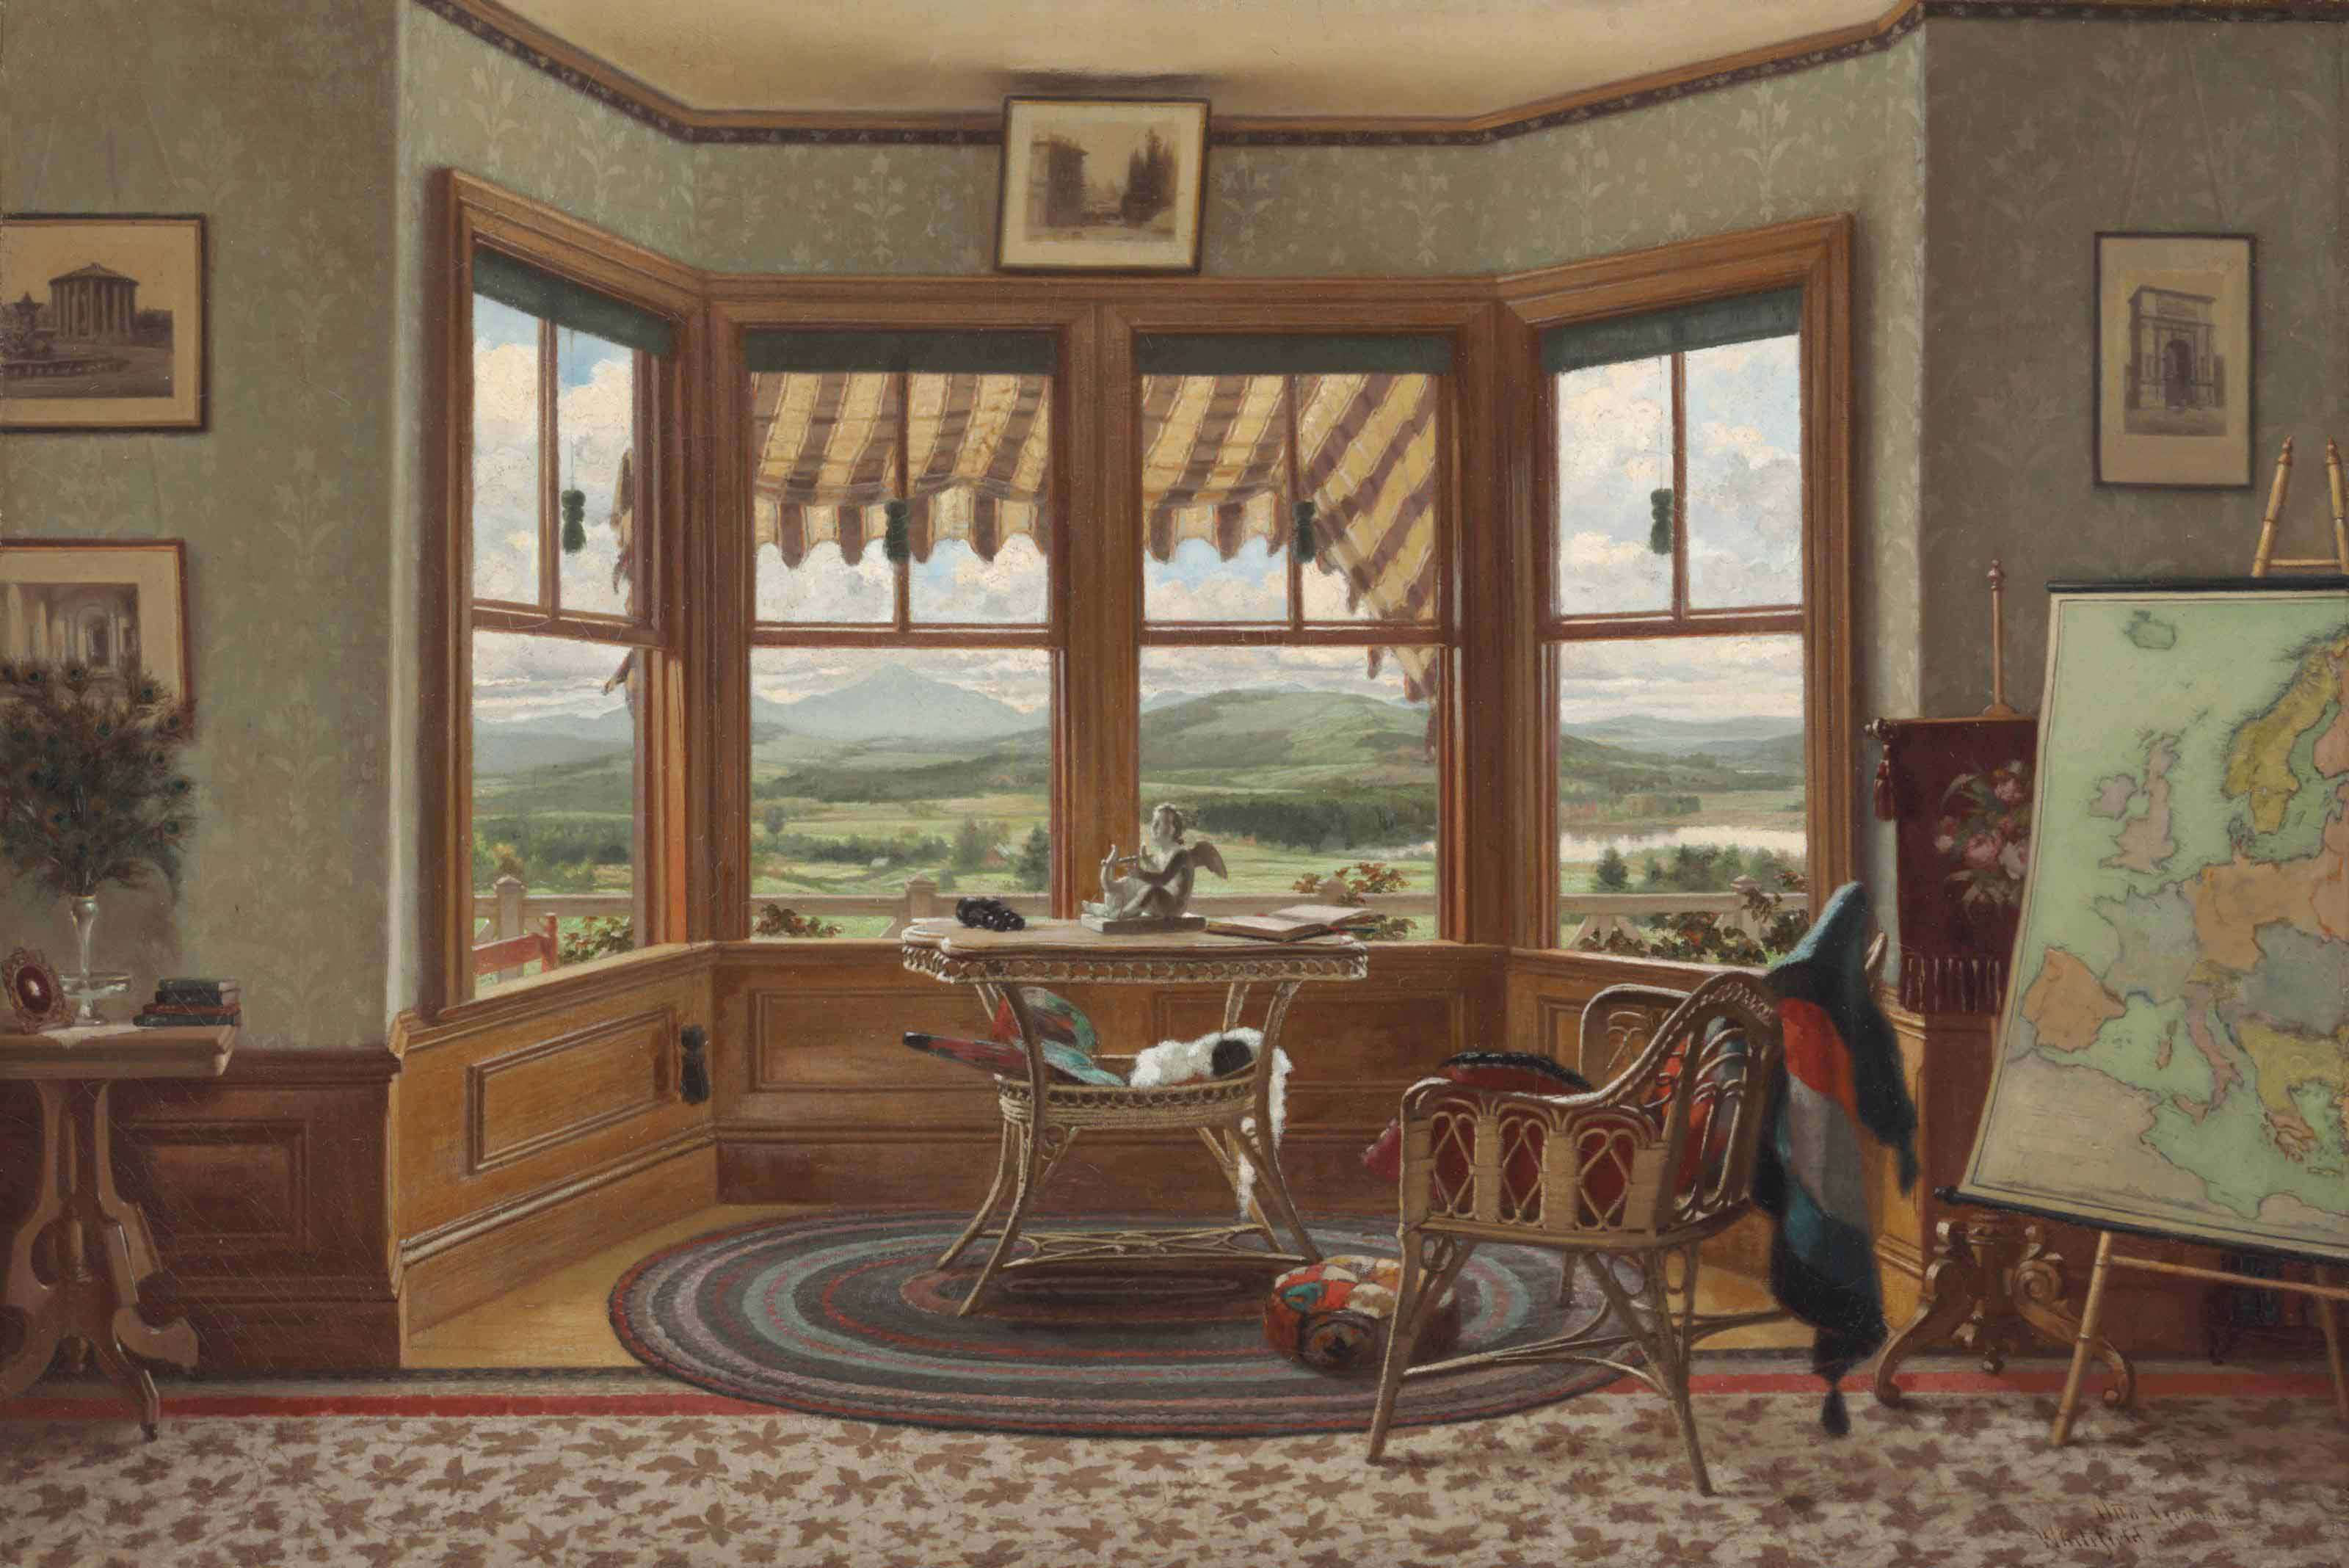 Interior at the Mountains